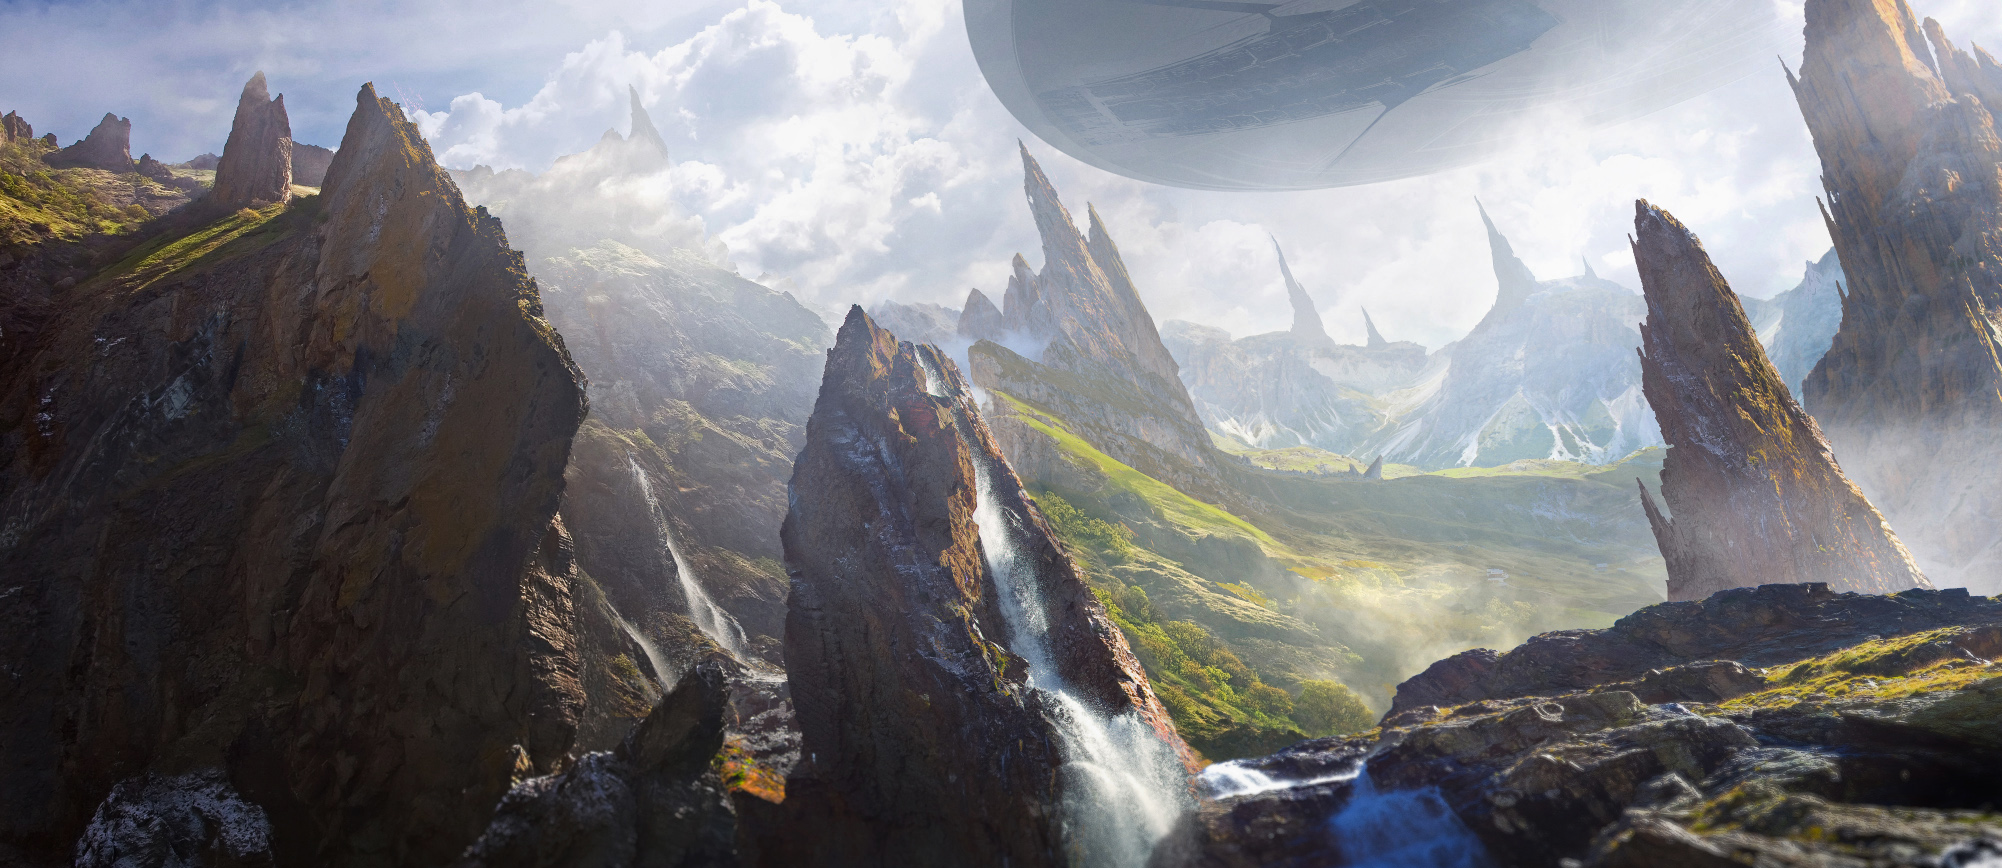 Matte painting by dmitry zaviyalov at for Matte painting